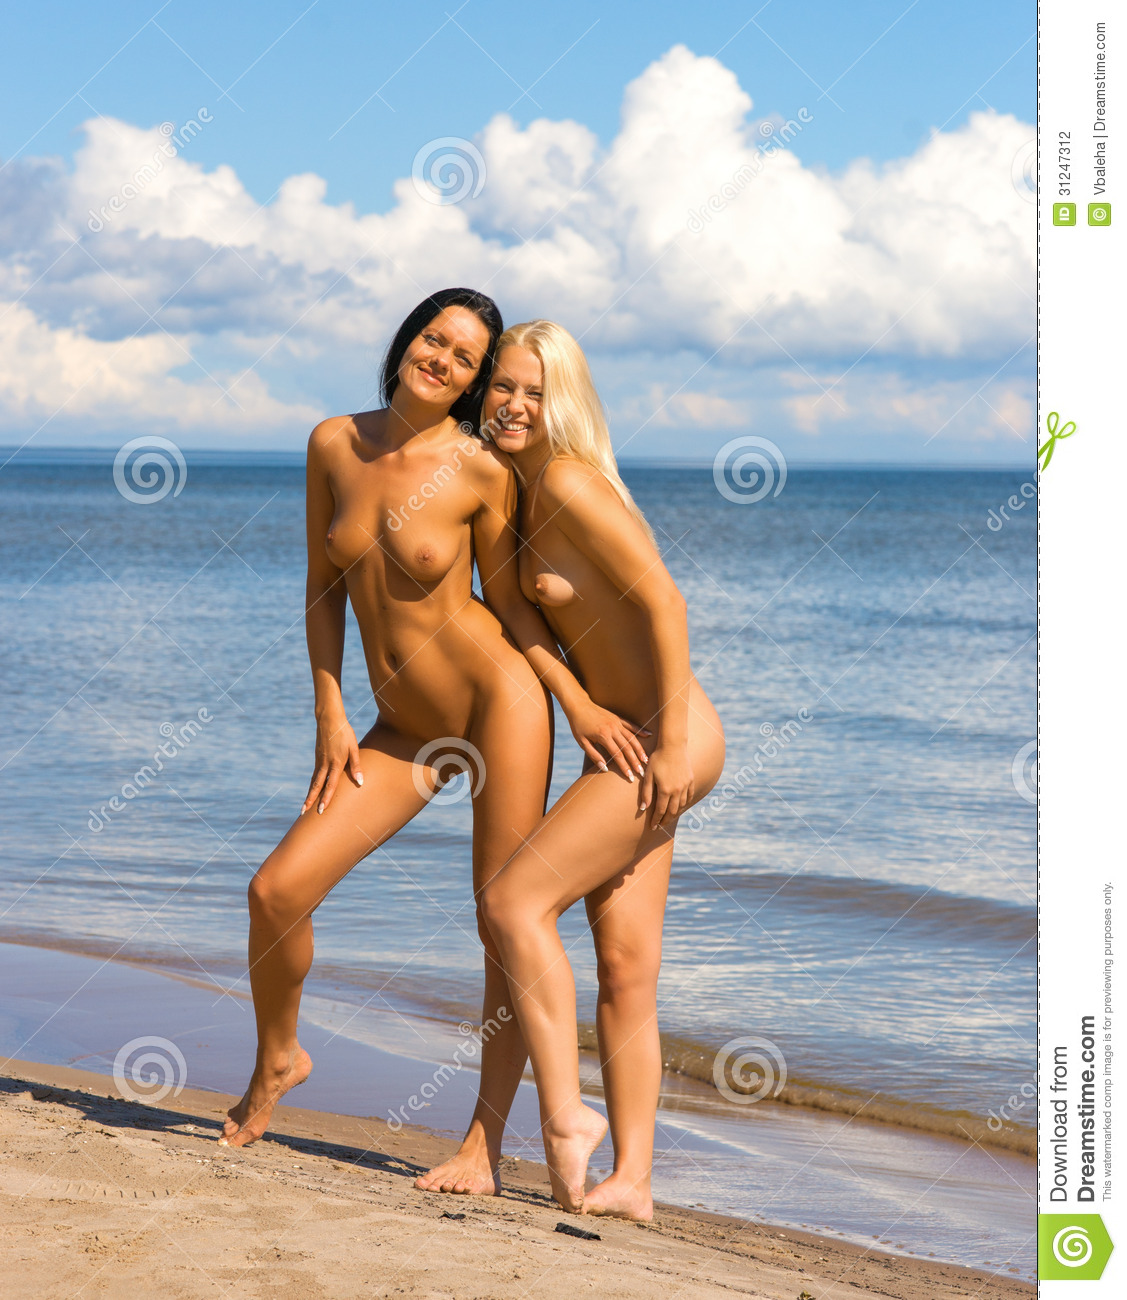 Women nude sun bathing